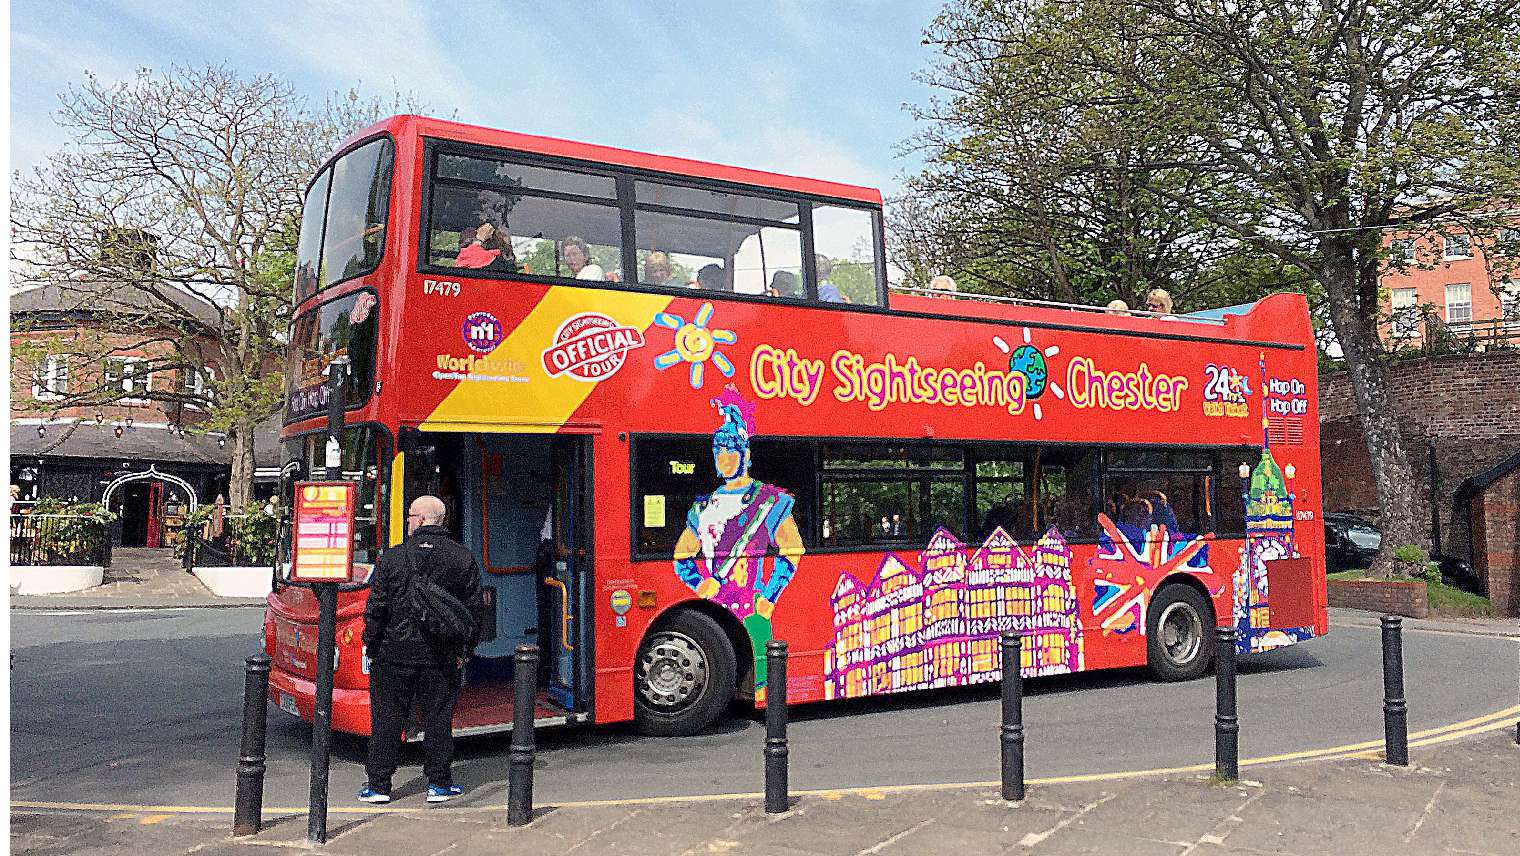 chester city sightseeing